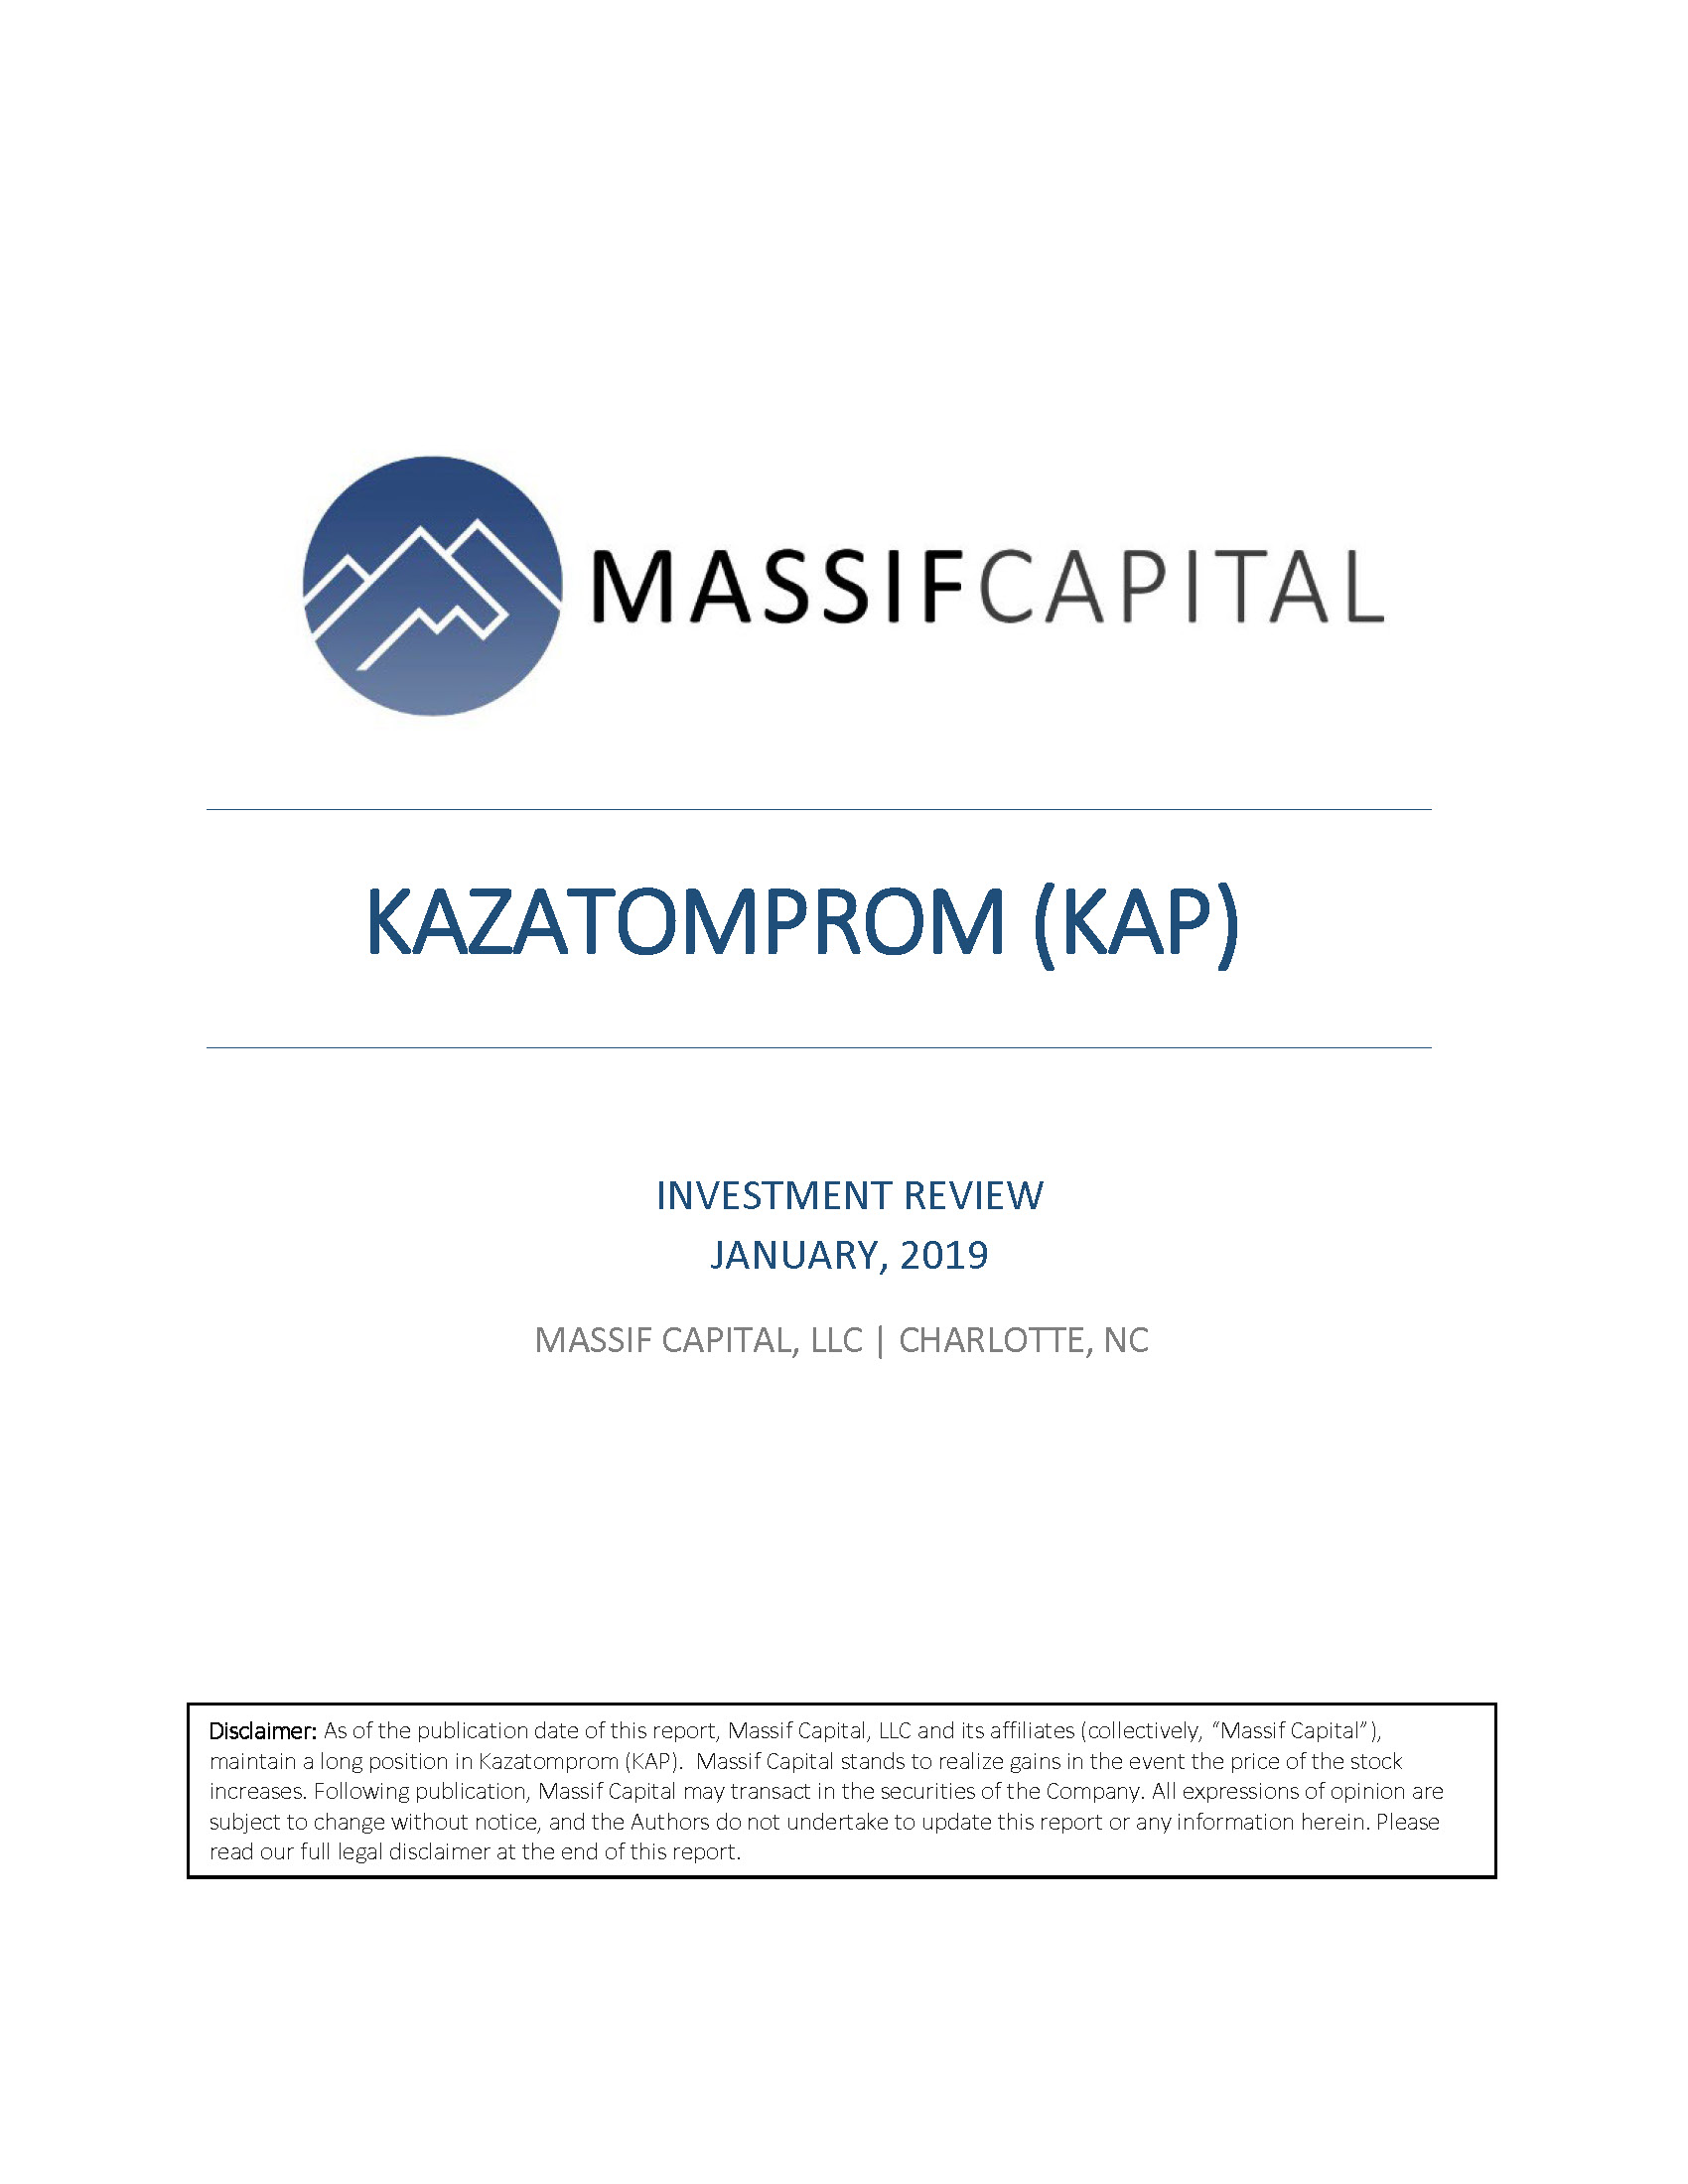 Initiating Report - KAP - January 2019 - Massif Capital_Page_01.jpg